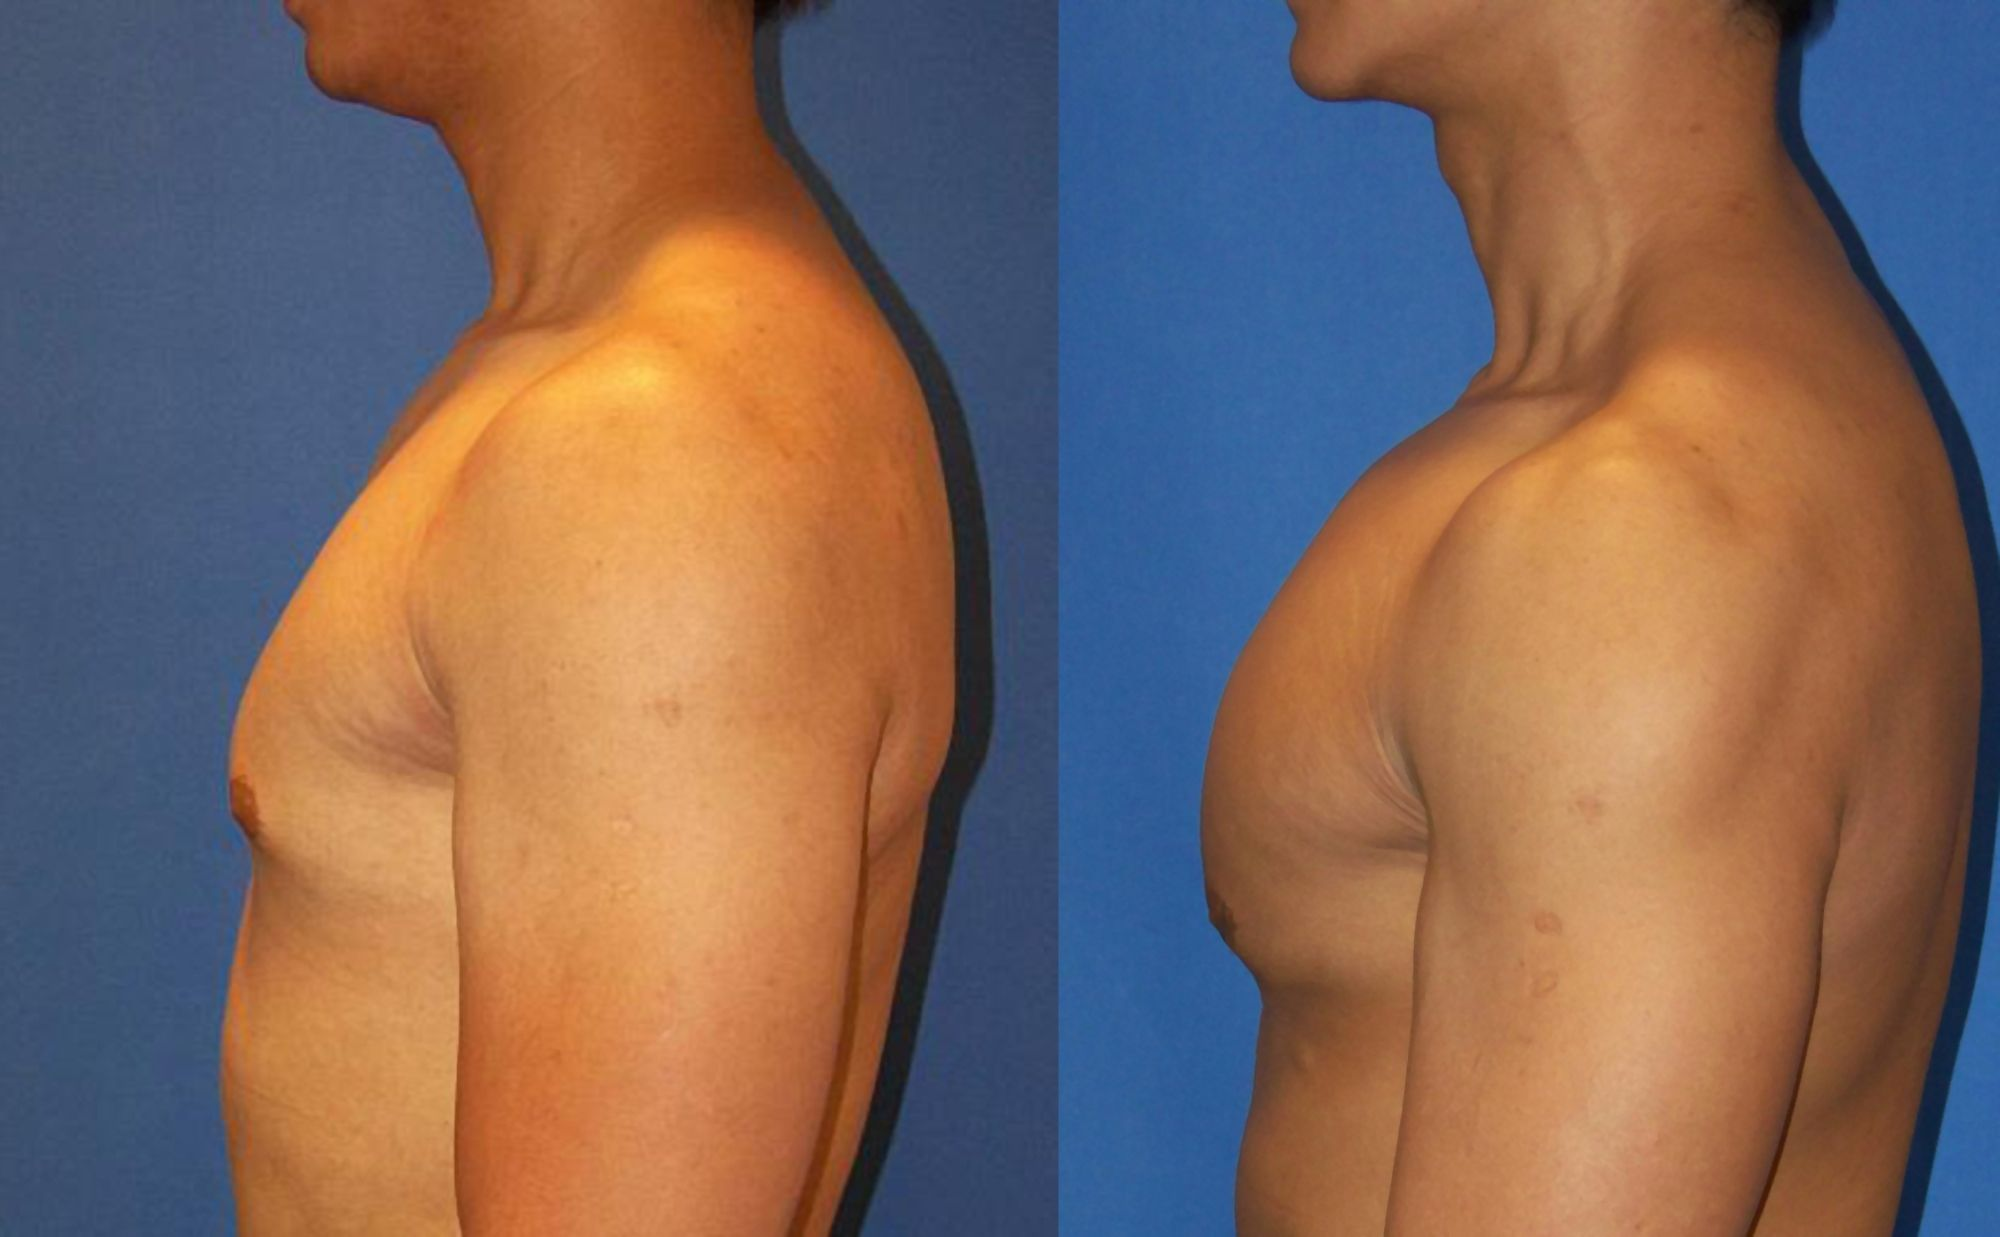 Pectoral prosthesis - Picture 2